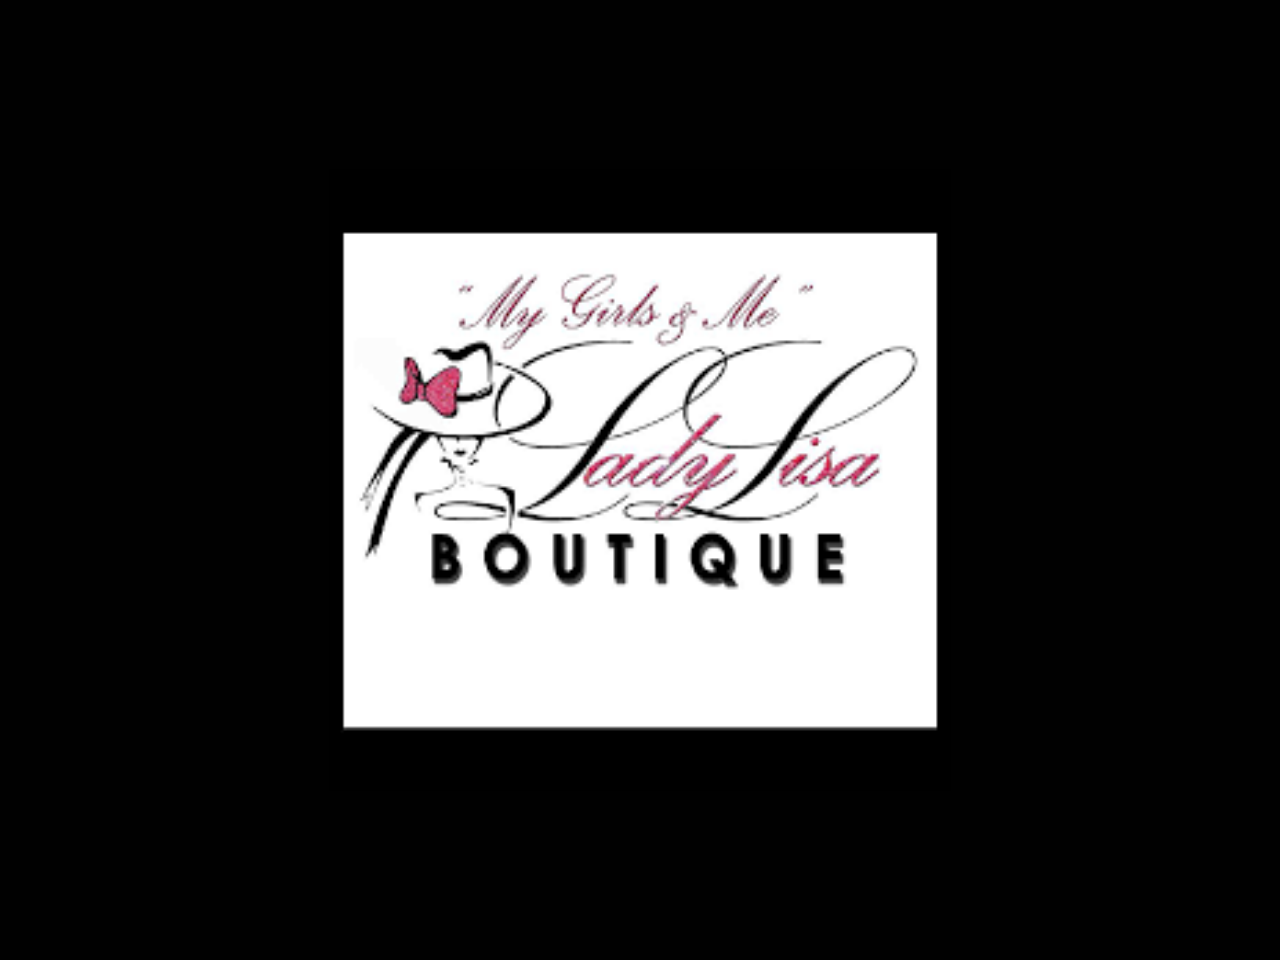 Lady Lisa Boutique